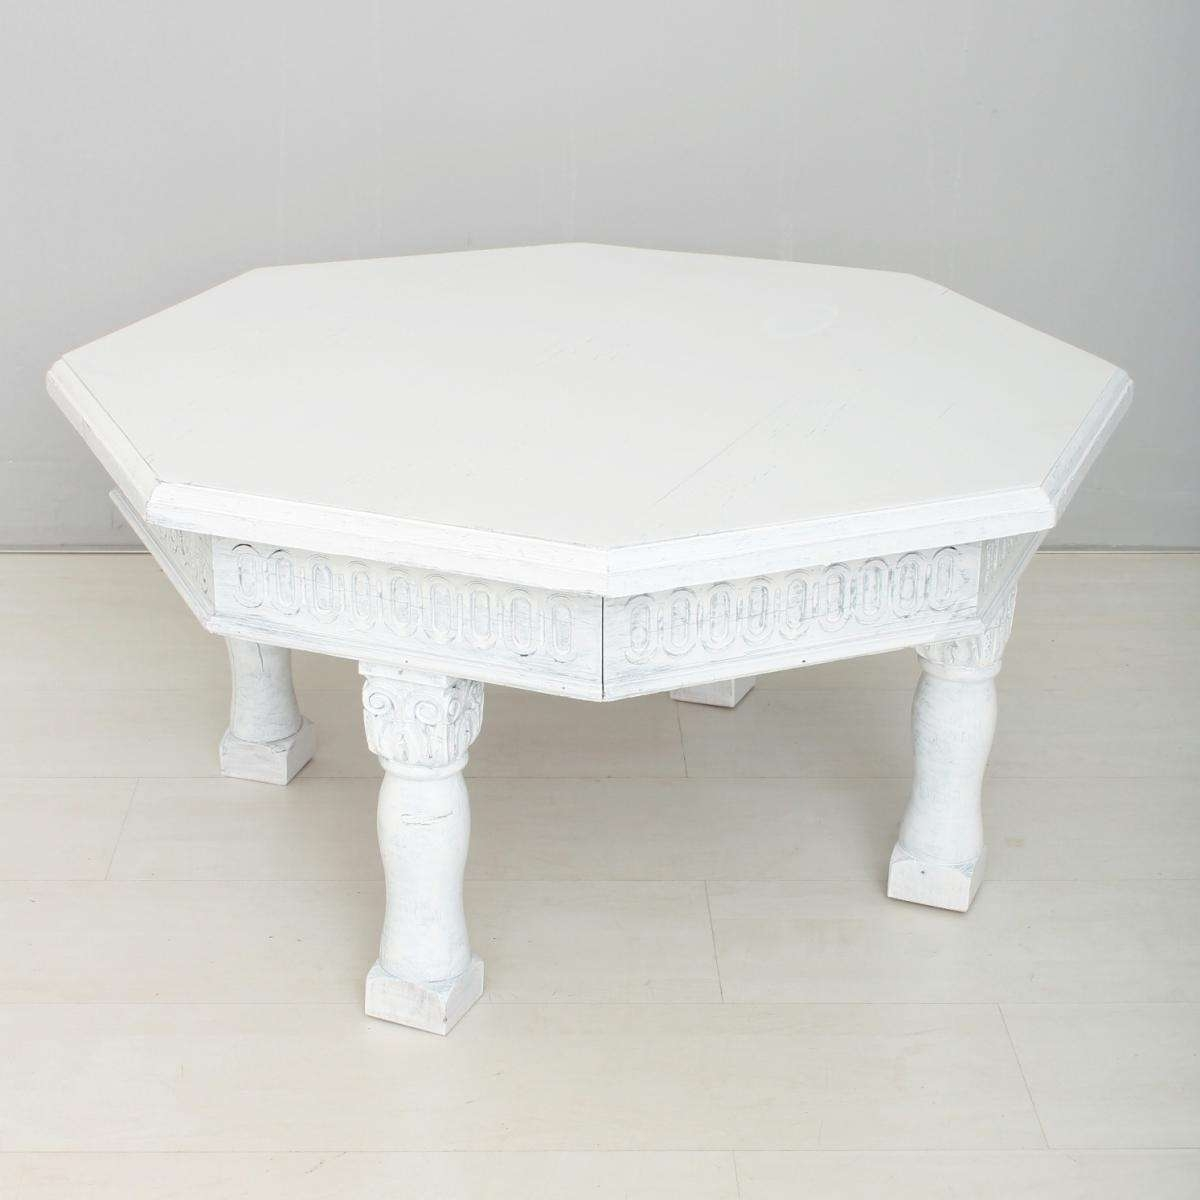 Latest Retro White Coffee Tables In Vintage White Coffee Table For Sale At Pamono (View 7 of 20)